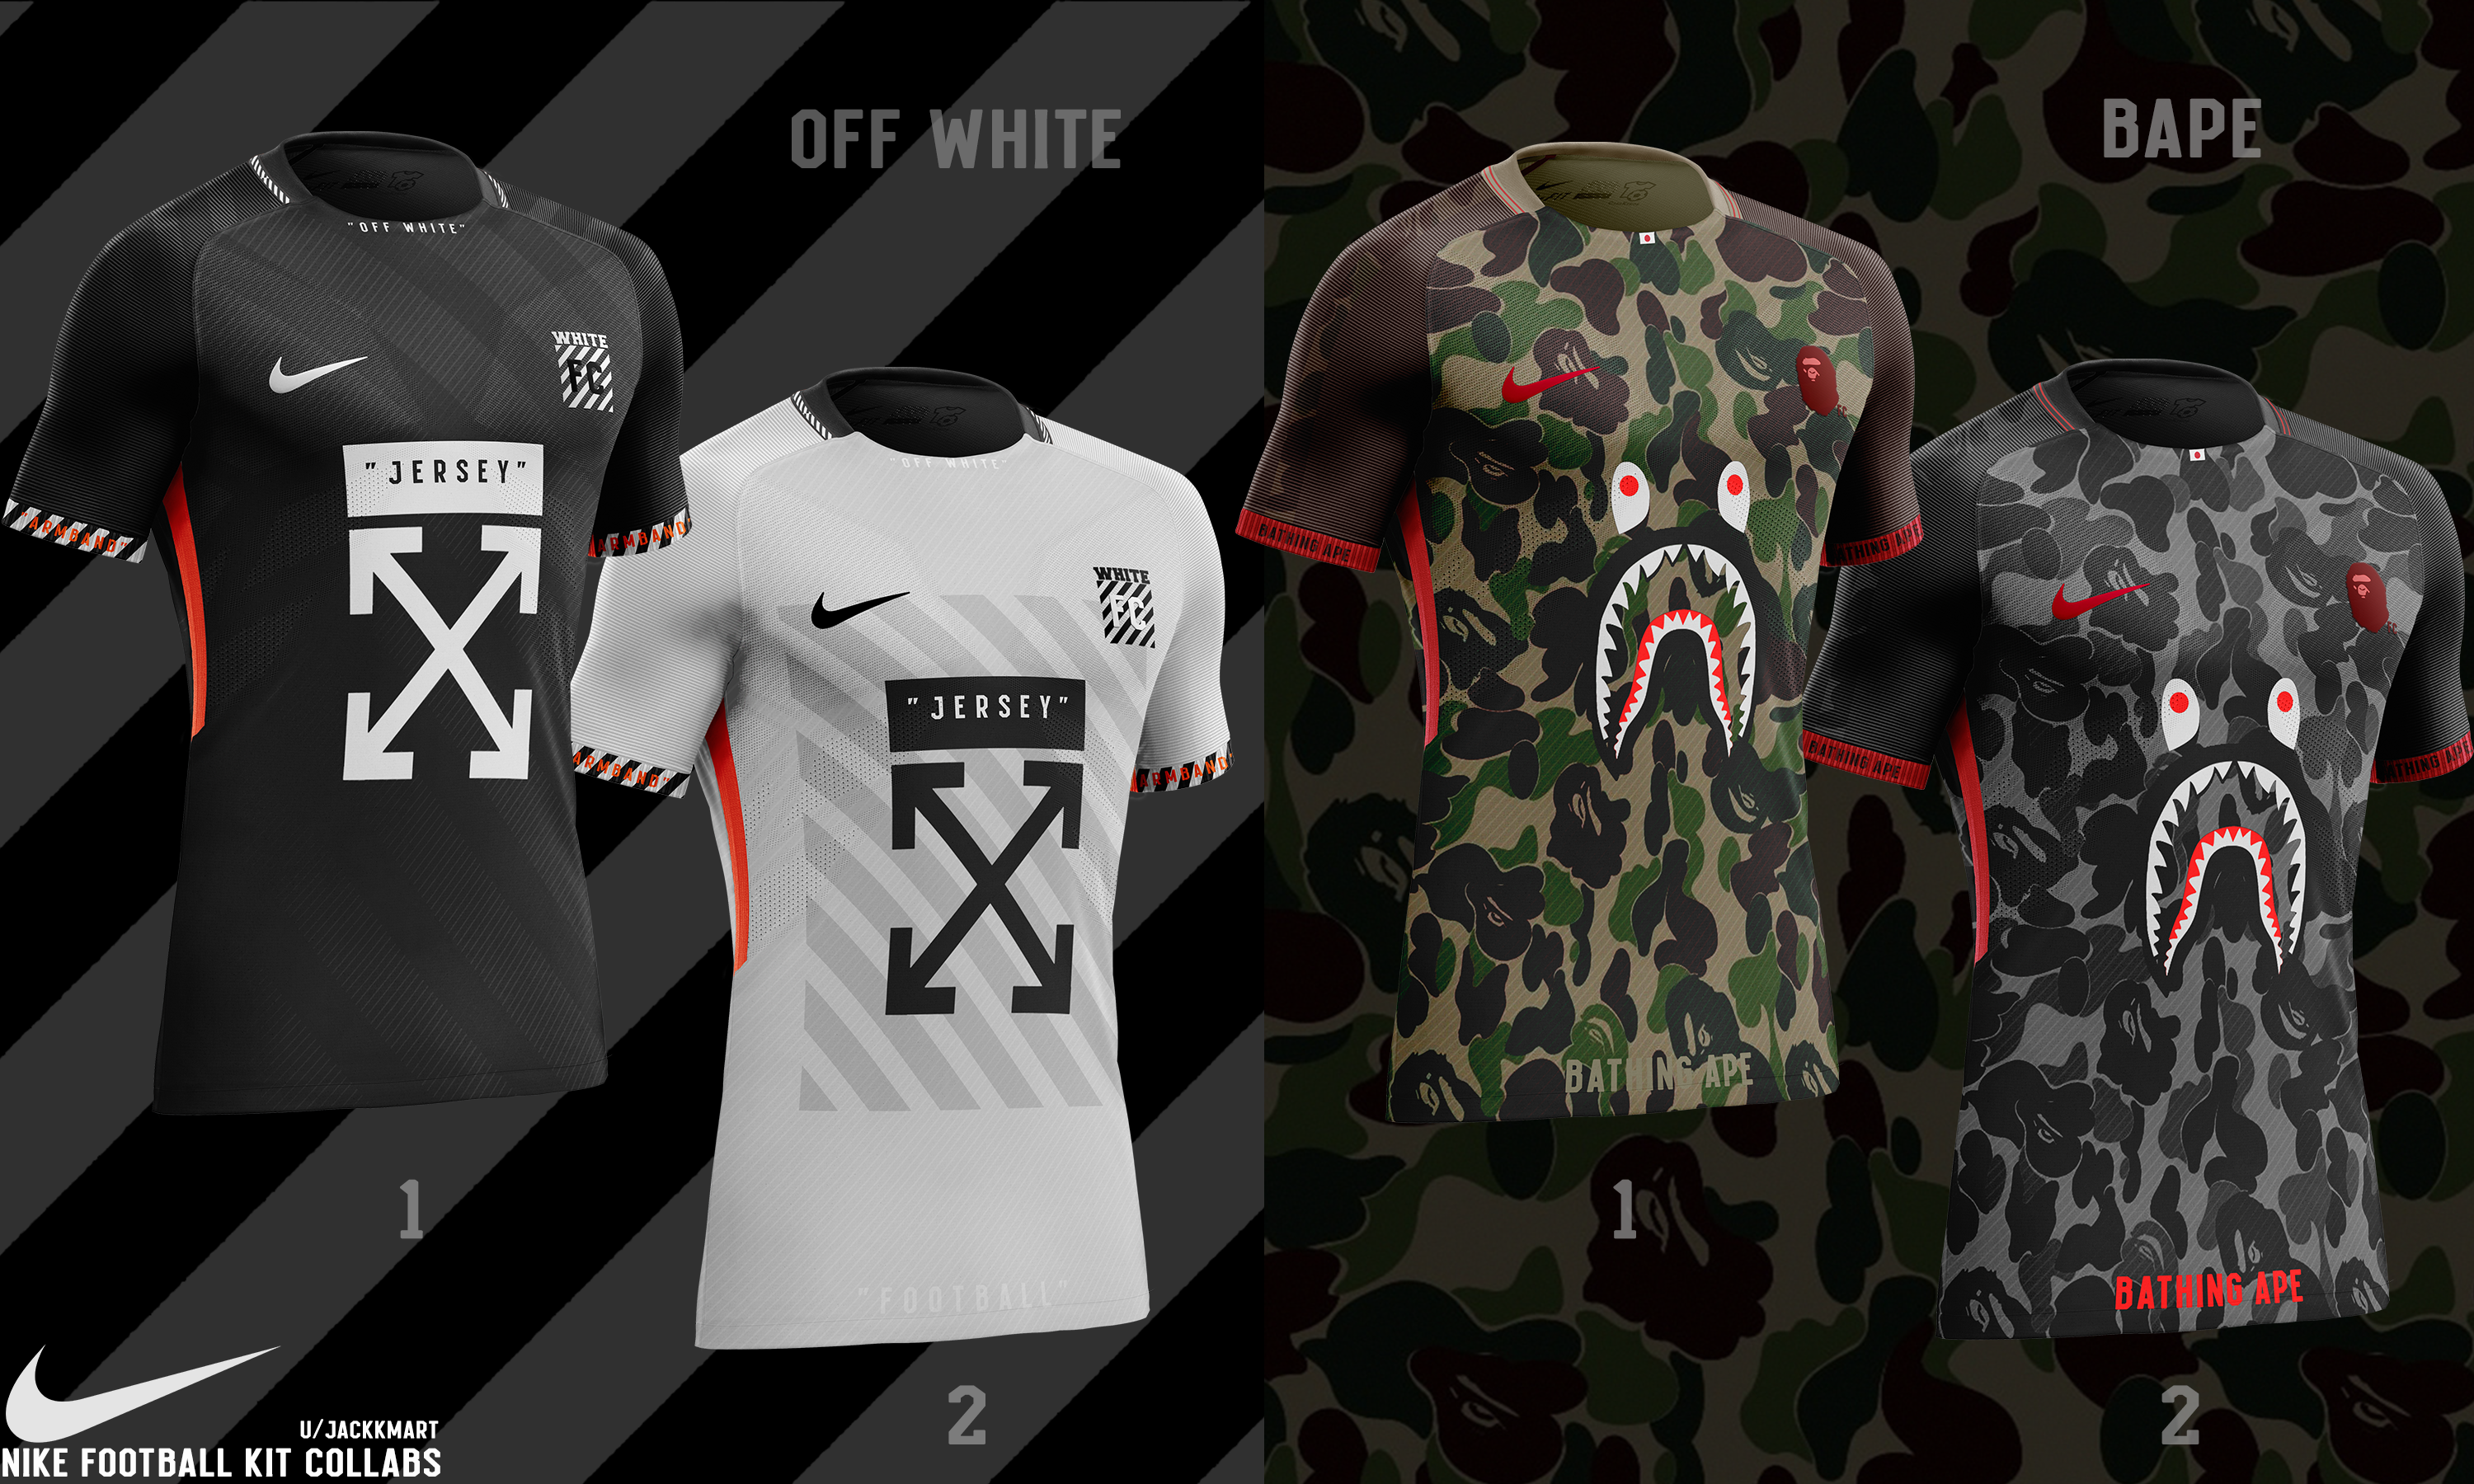 Pin By Beine On Football Jersey Football Design Football Kits Nike Football Kits